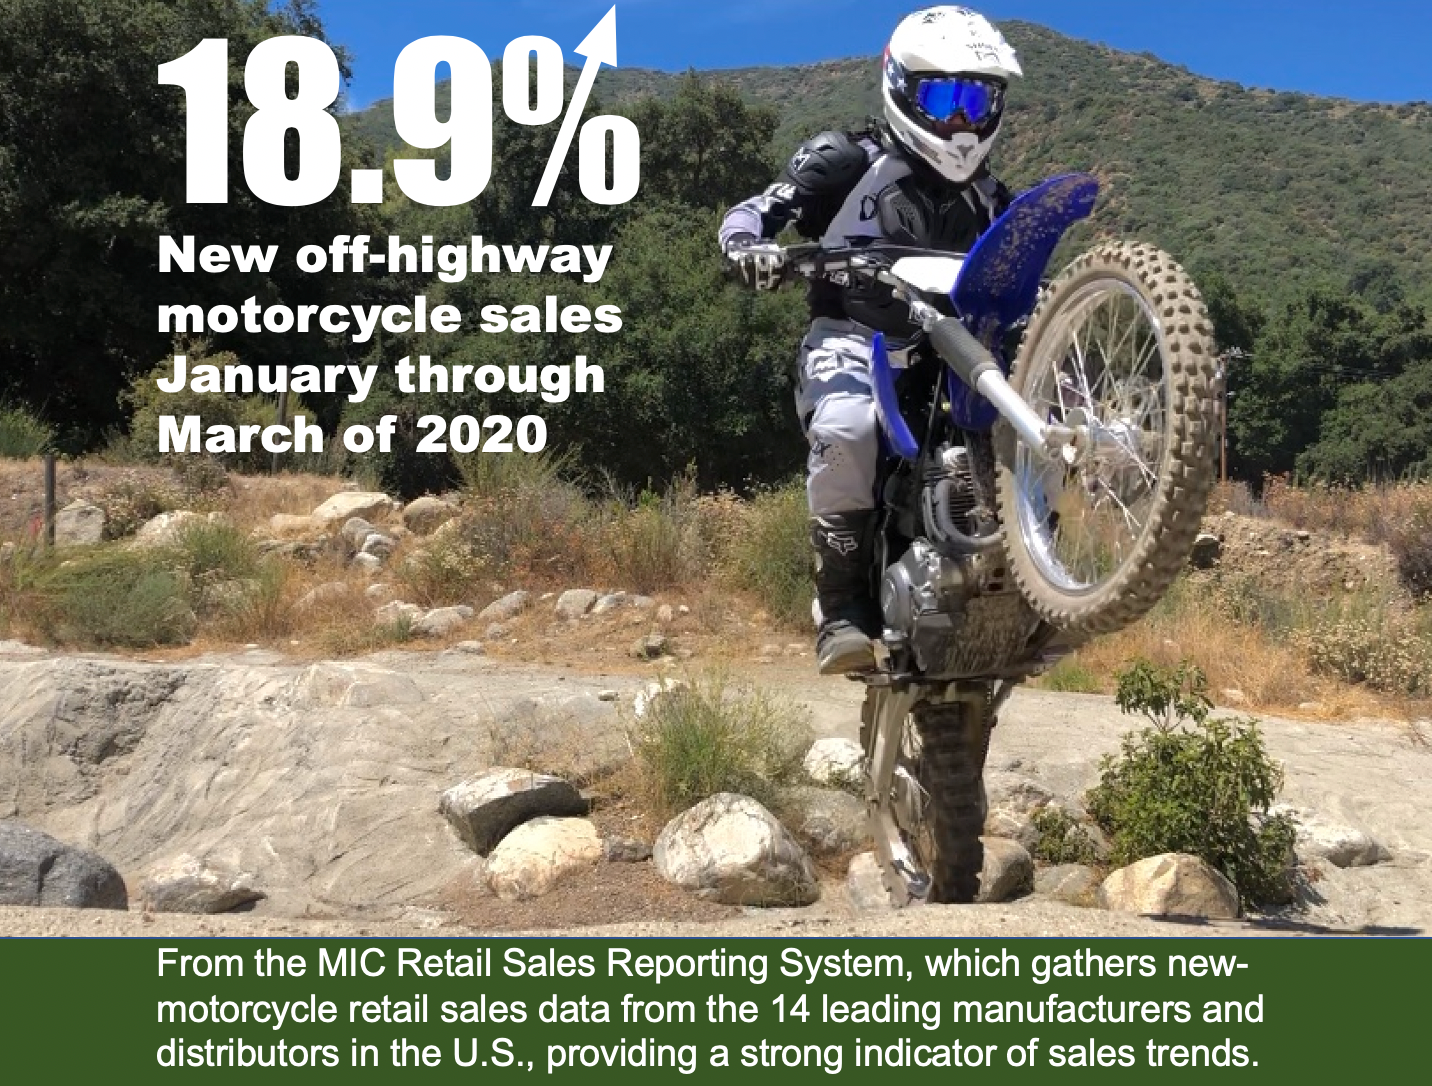 200701 As Dirt Bike Sales Jump, Motorcycle Safety Foundation Offers Tips, Resources (1)